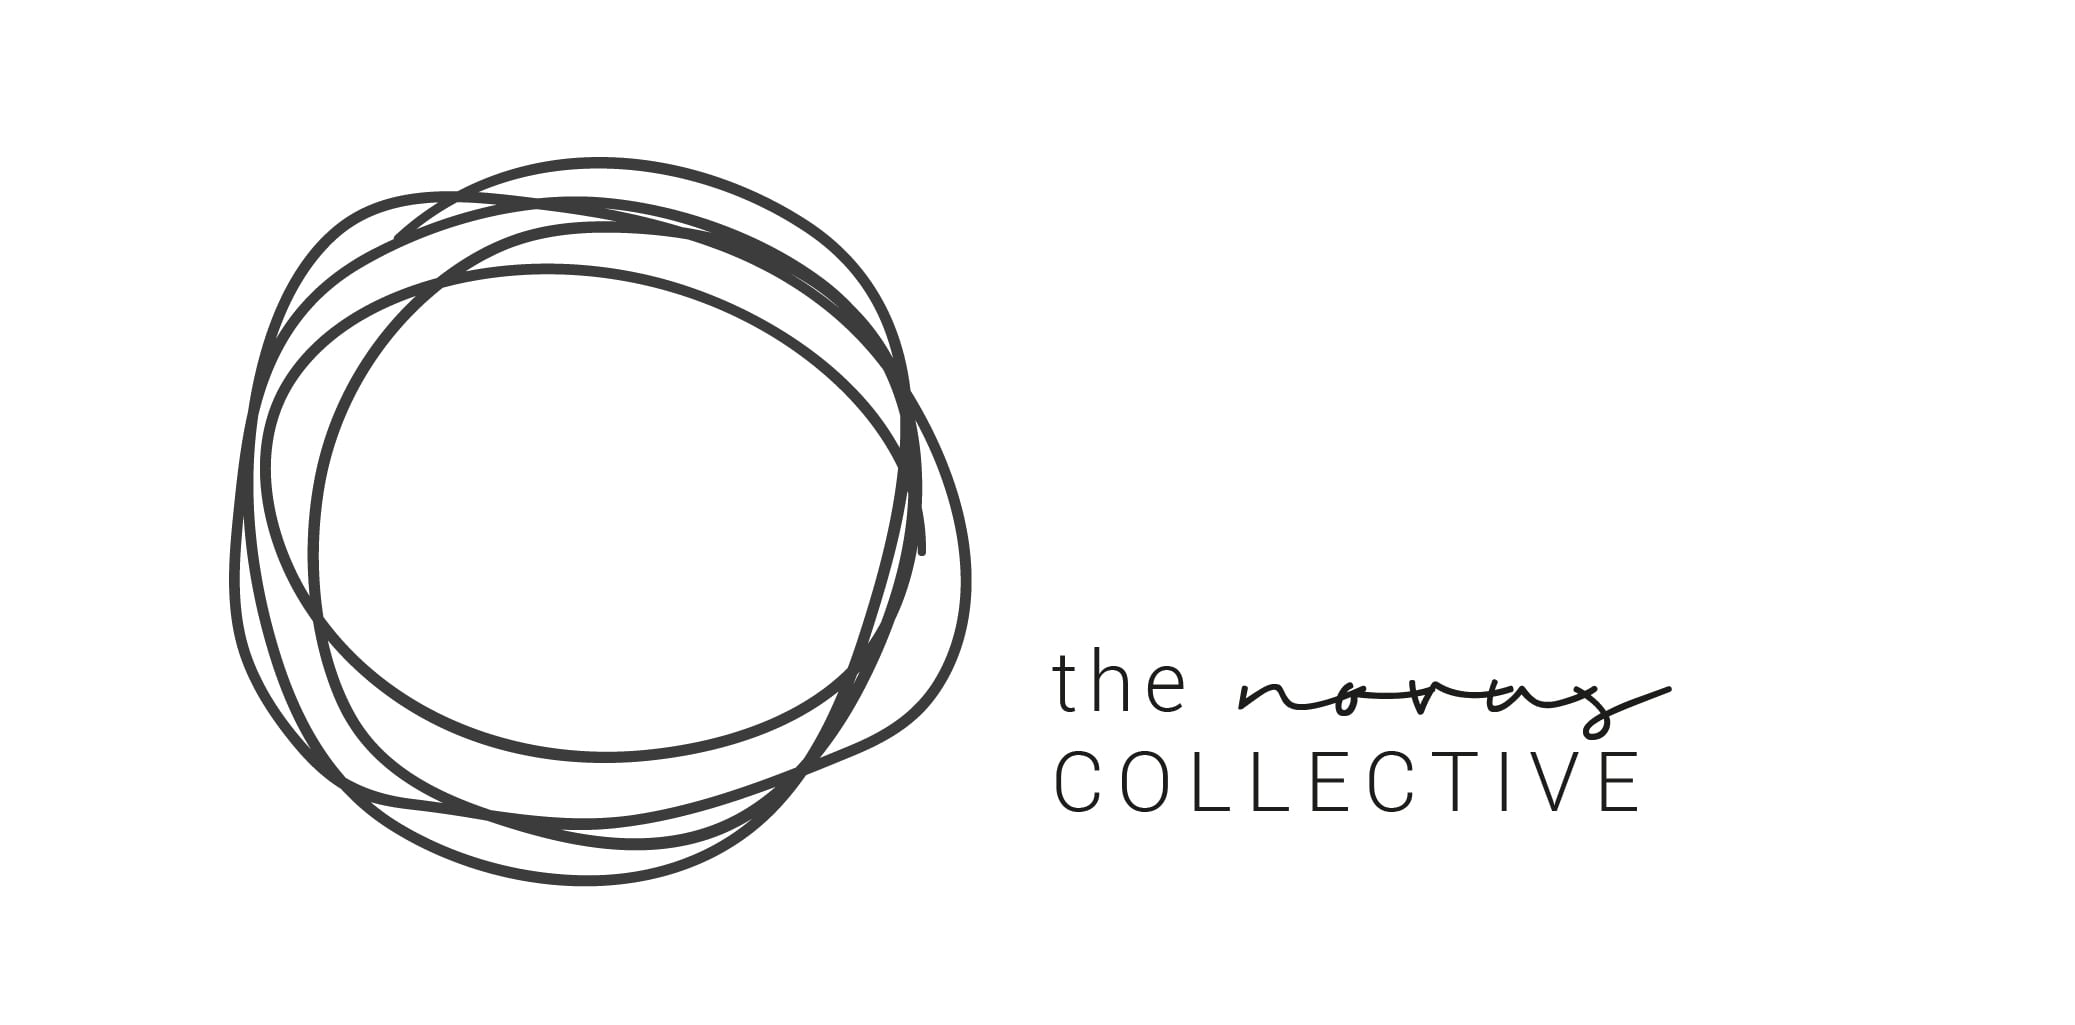 Novus Collective